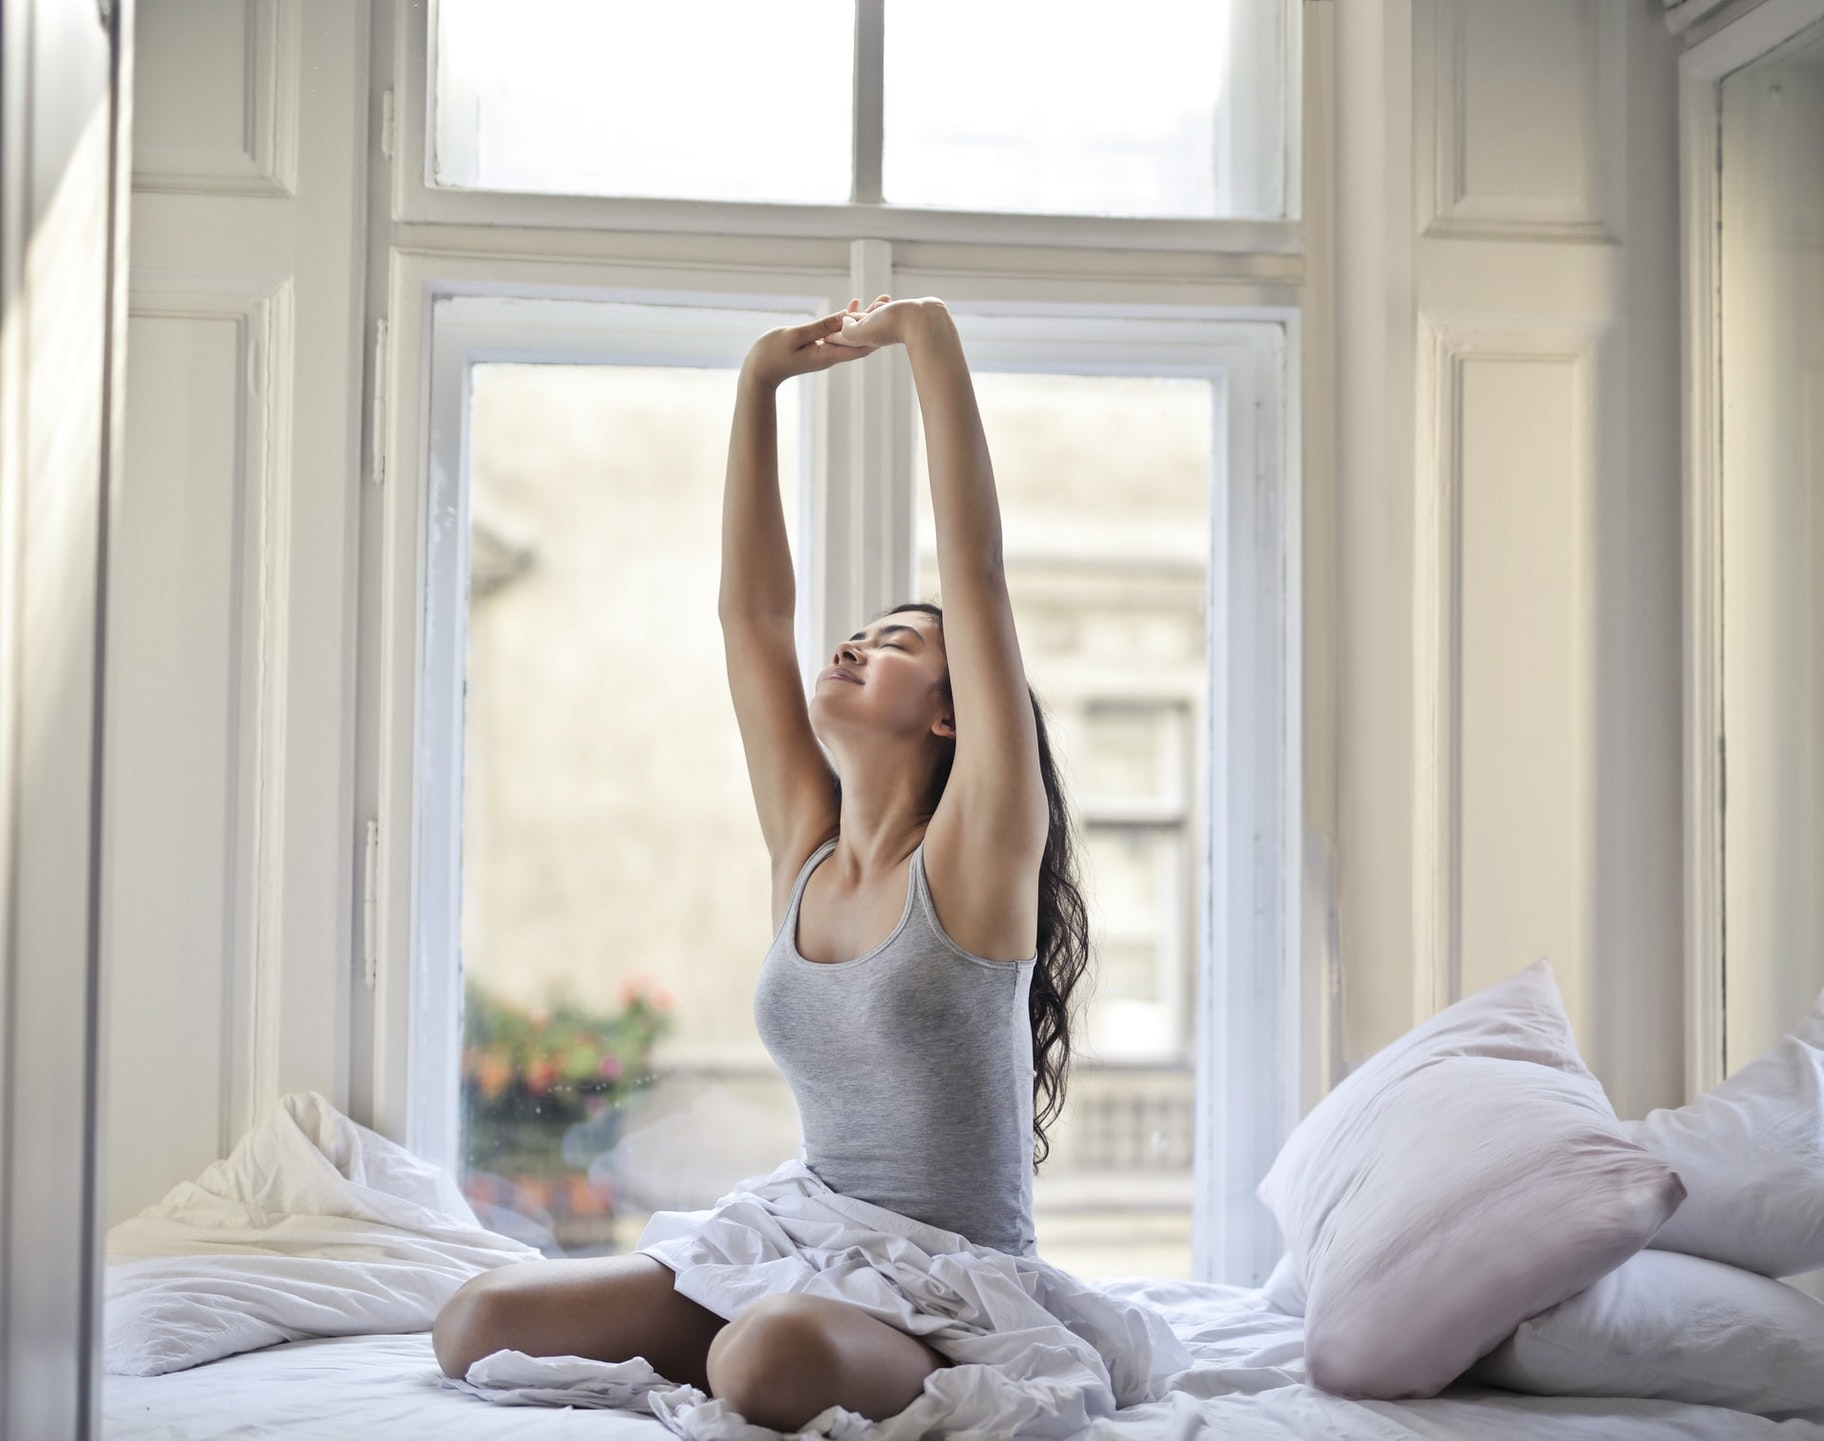 How to Develop a Morning Routine: Start Small